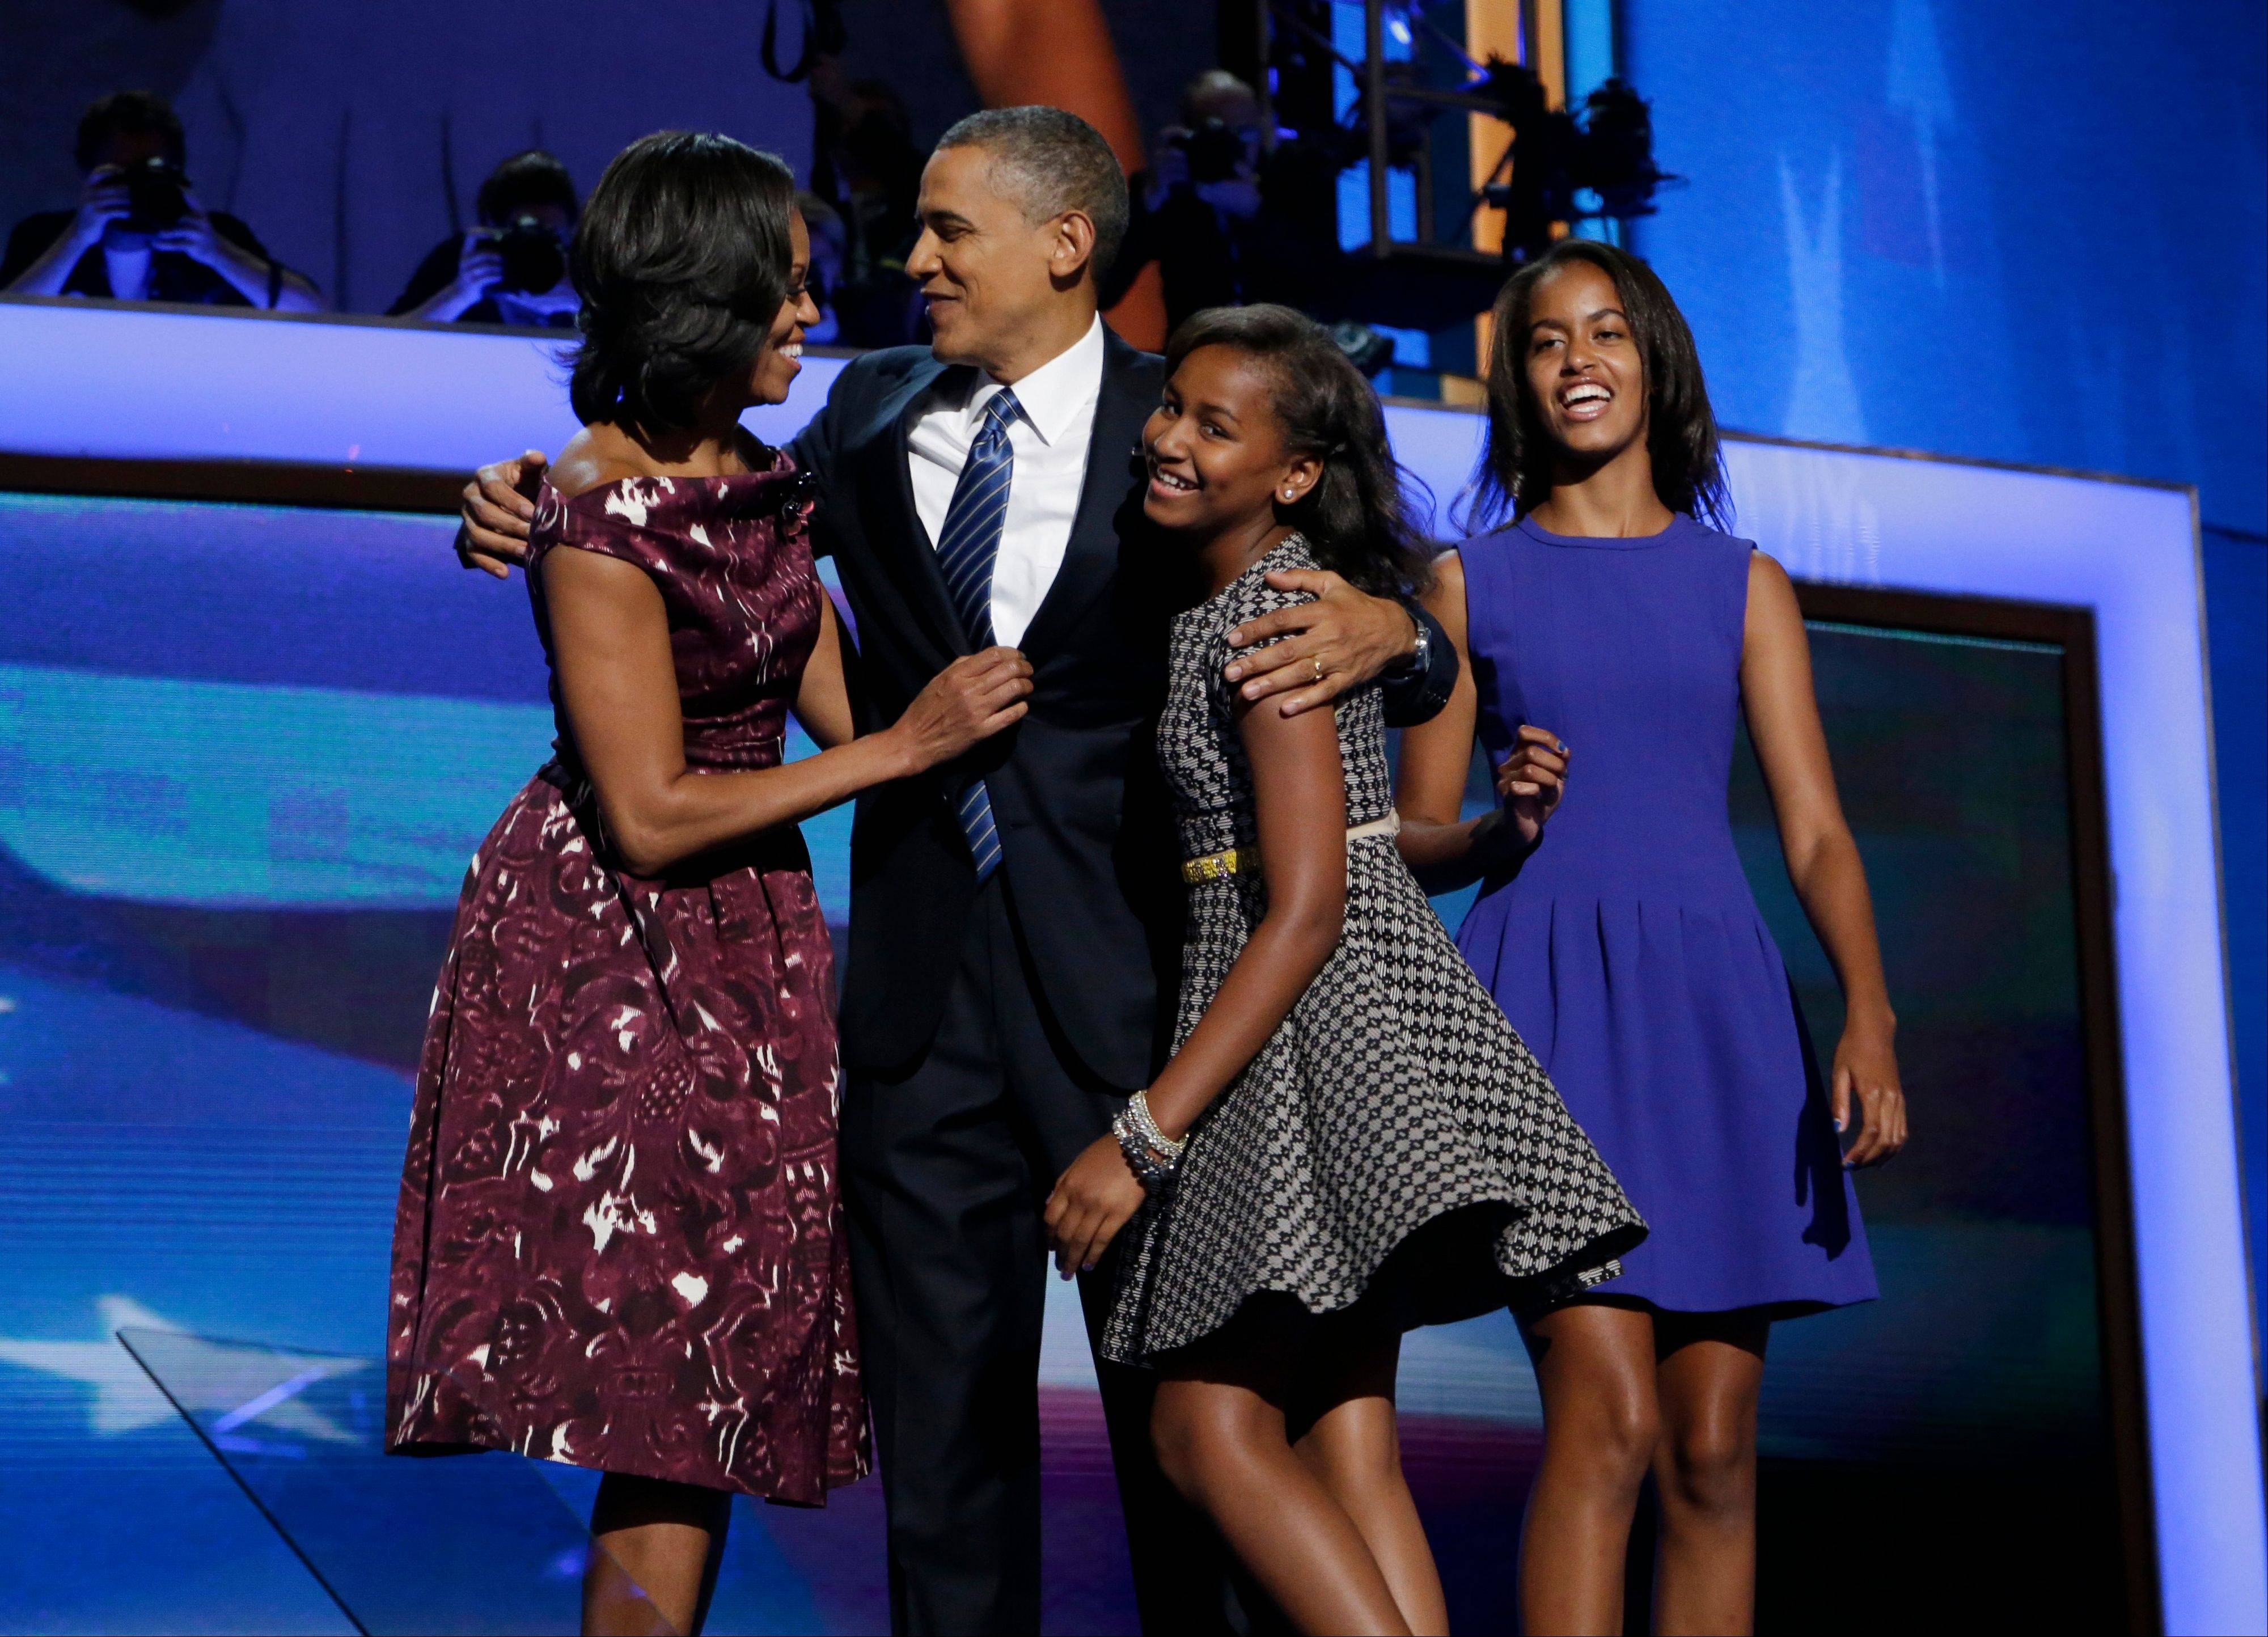 President Barack Obama, left, is joined on stage Thursday by first lady Michelle Obama, left, their children Sasha and Malia, right, on the final day of the Democratic National Convention in Charlotte, N.C.